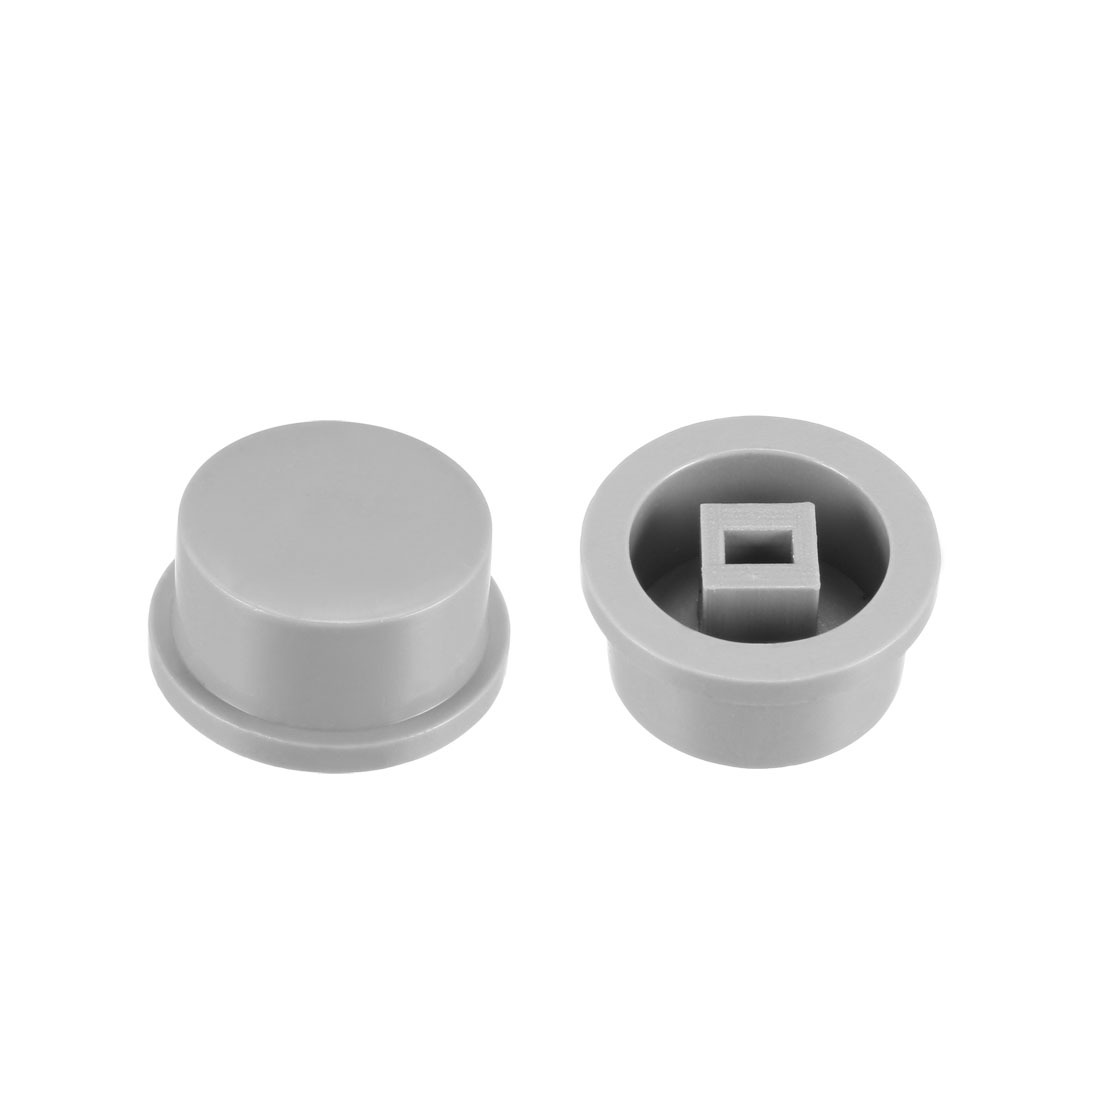 25Pcs Plastic 13.5x7.5mm Latching Pushbutton Tactile Switch Caps Cover Grey